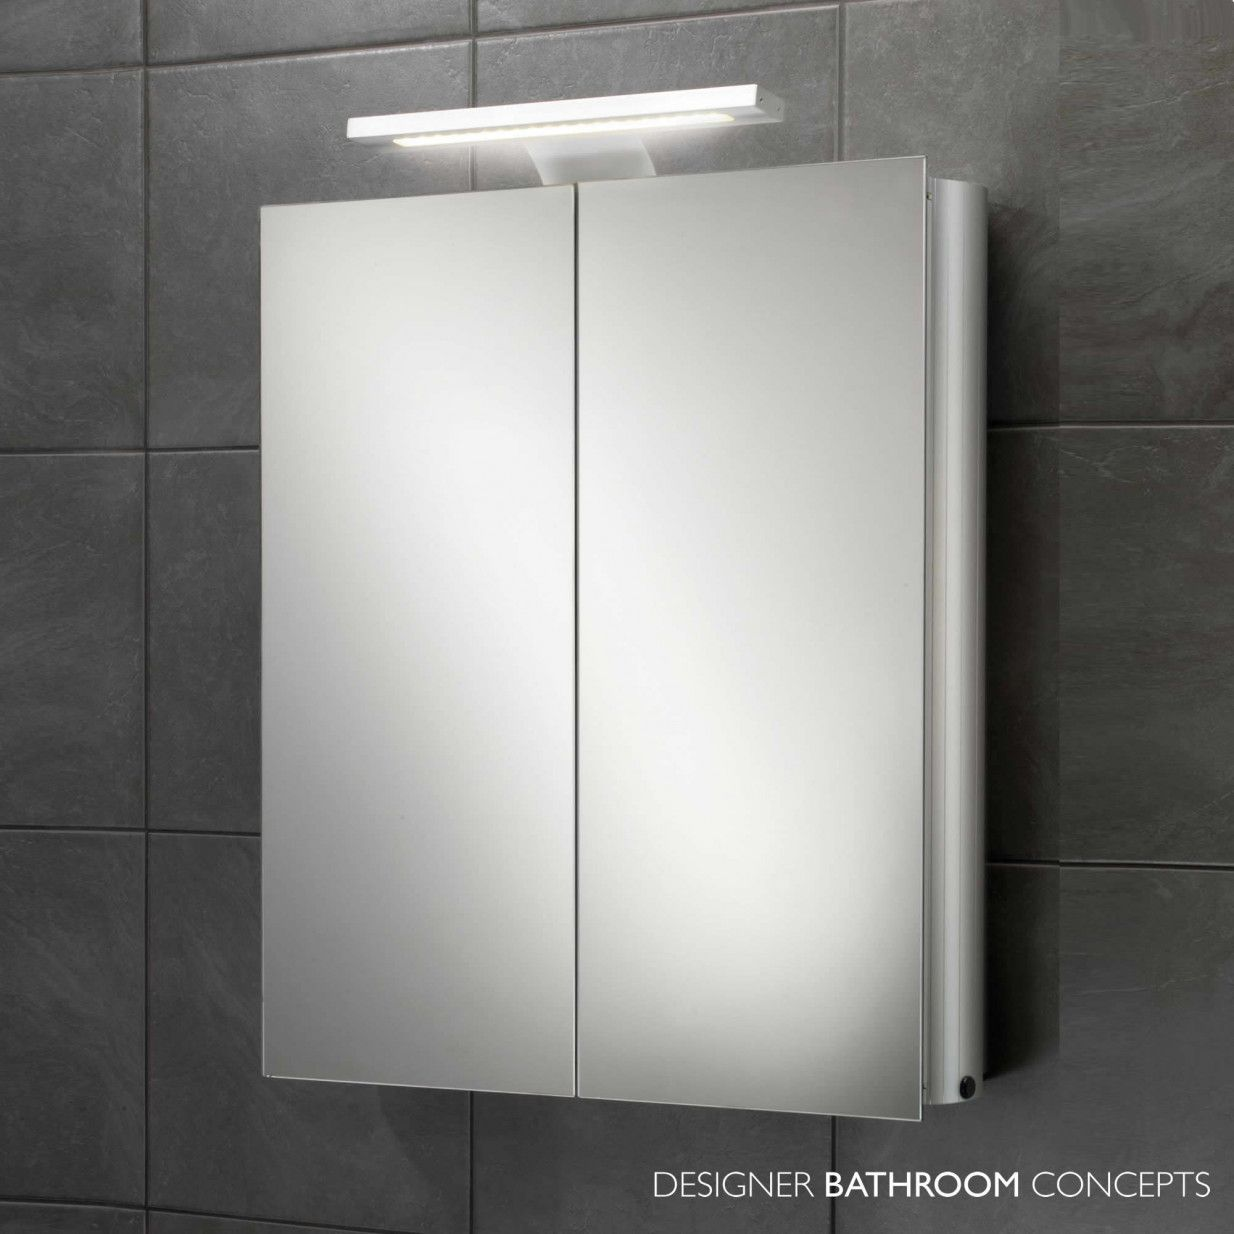 70 mirrored bathroom cabinet with lights popular interior paint 70 mirrored bathroom cabinet with lights popular interior paint colors check more at http mozeypictures Image collections